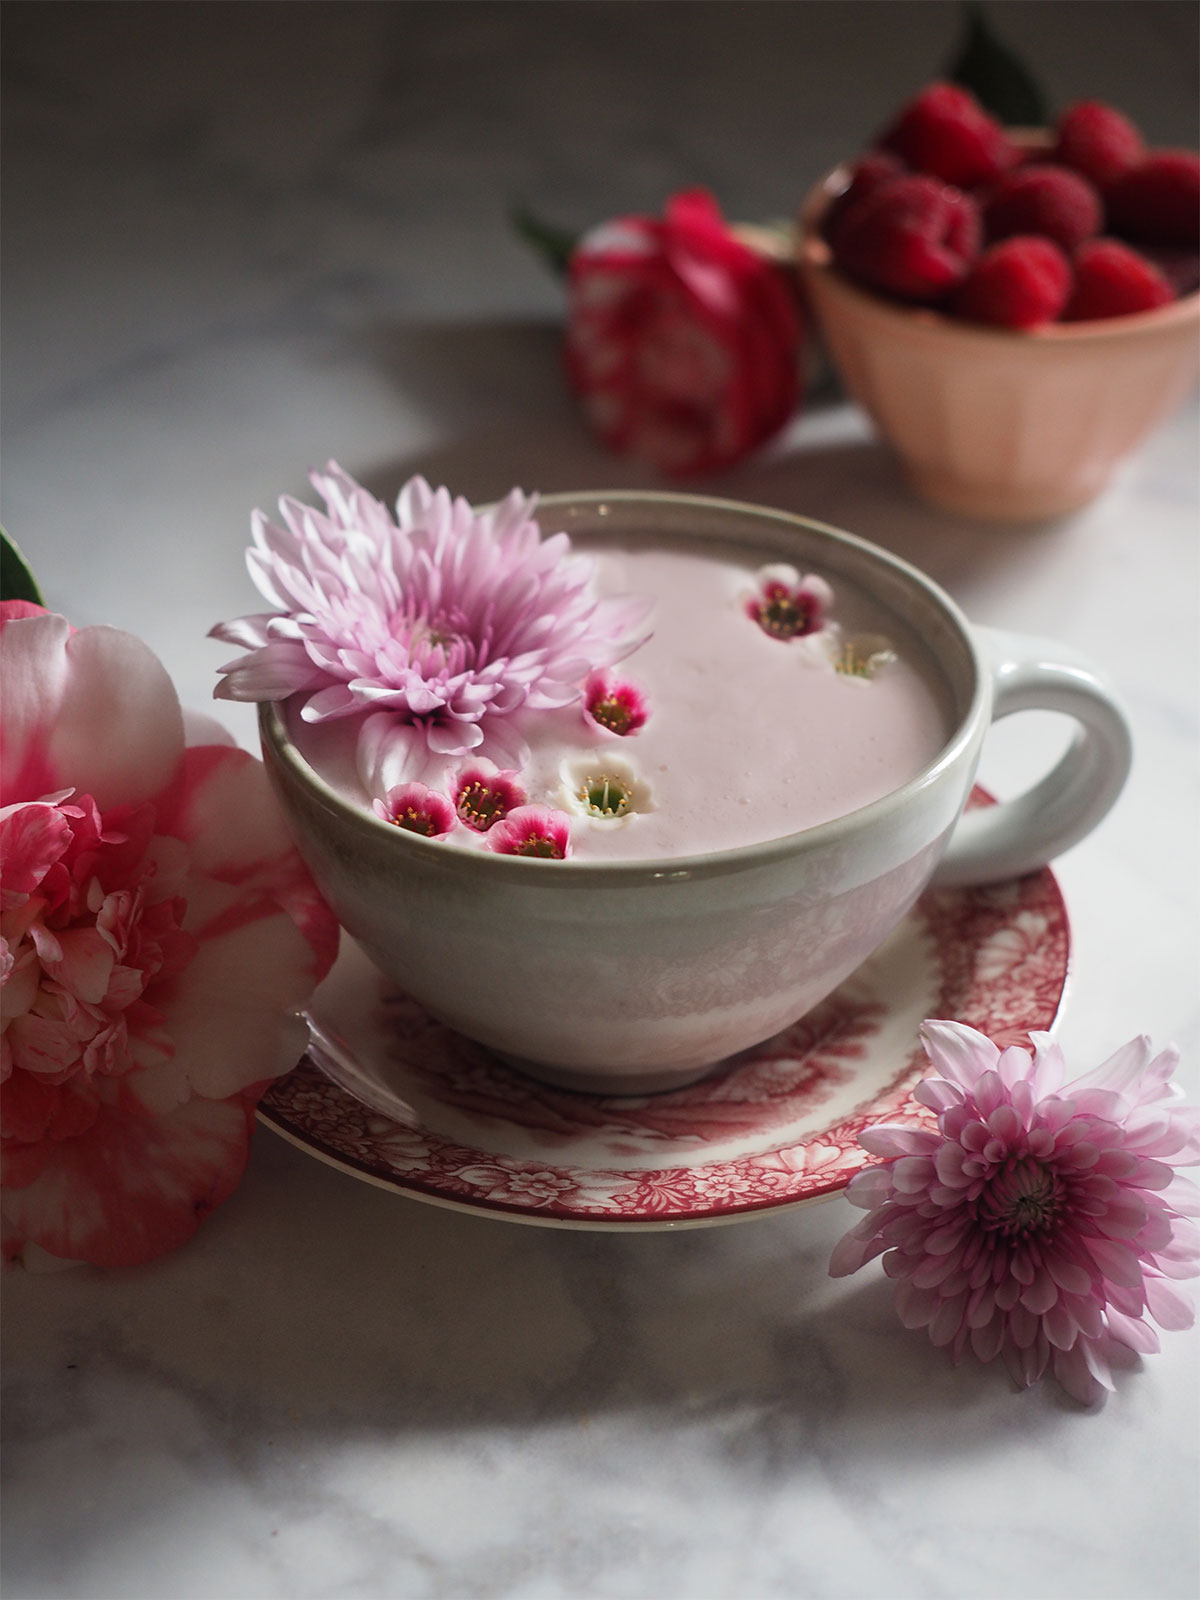 Almond tea with natural beetroot creates the pink color in this Pink Almond Tea Latte. It's a cozy and slightly sweet indulgence for snuggling on the weekend or catching up with your ladies.